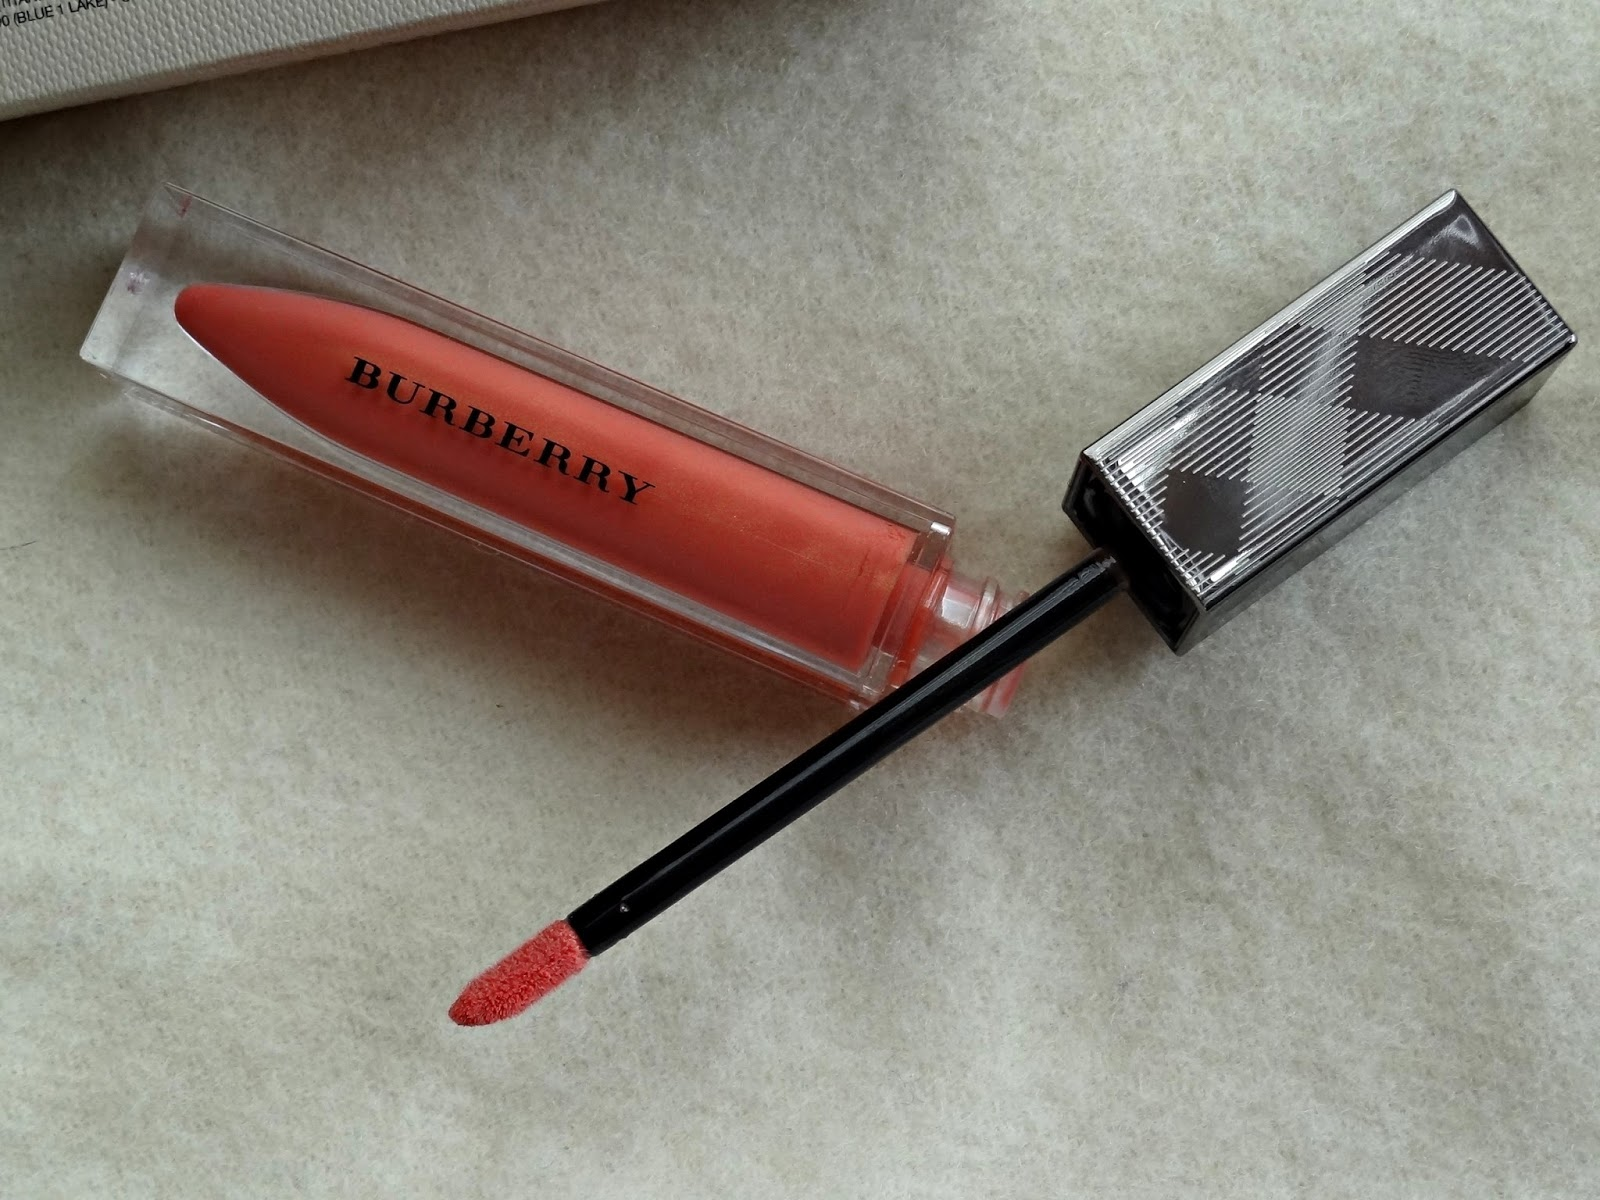 Burberry Beauty Cameo Lip Glow